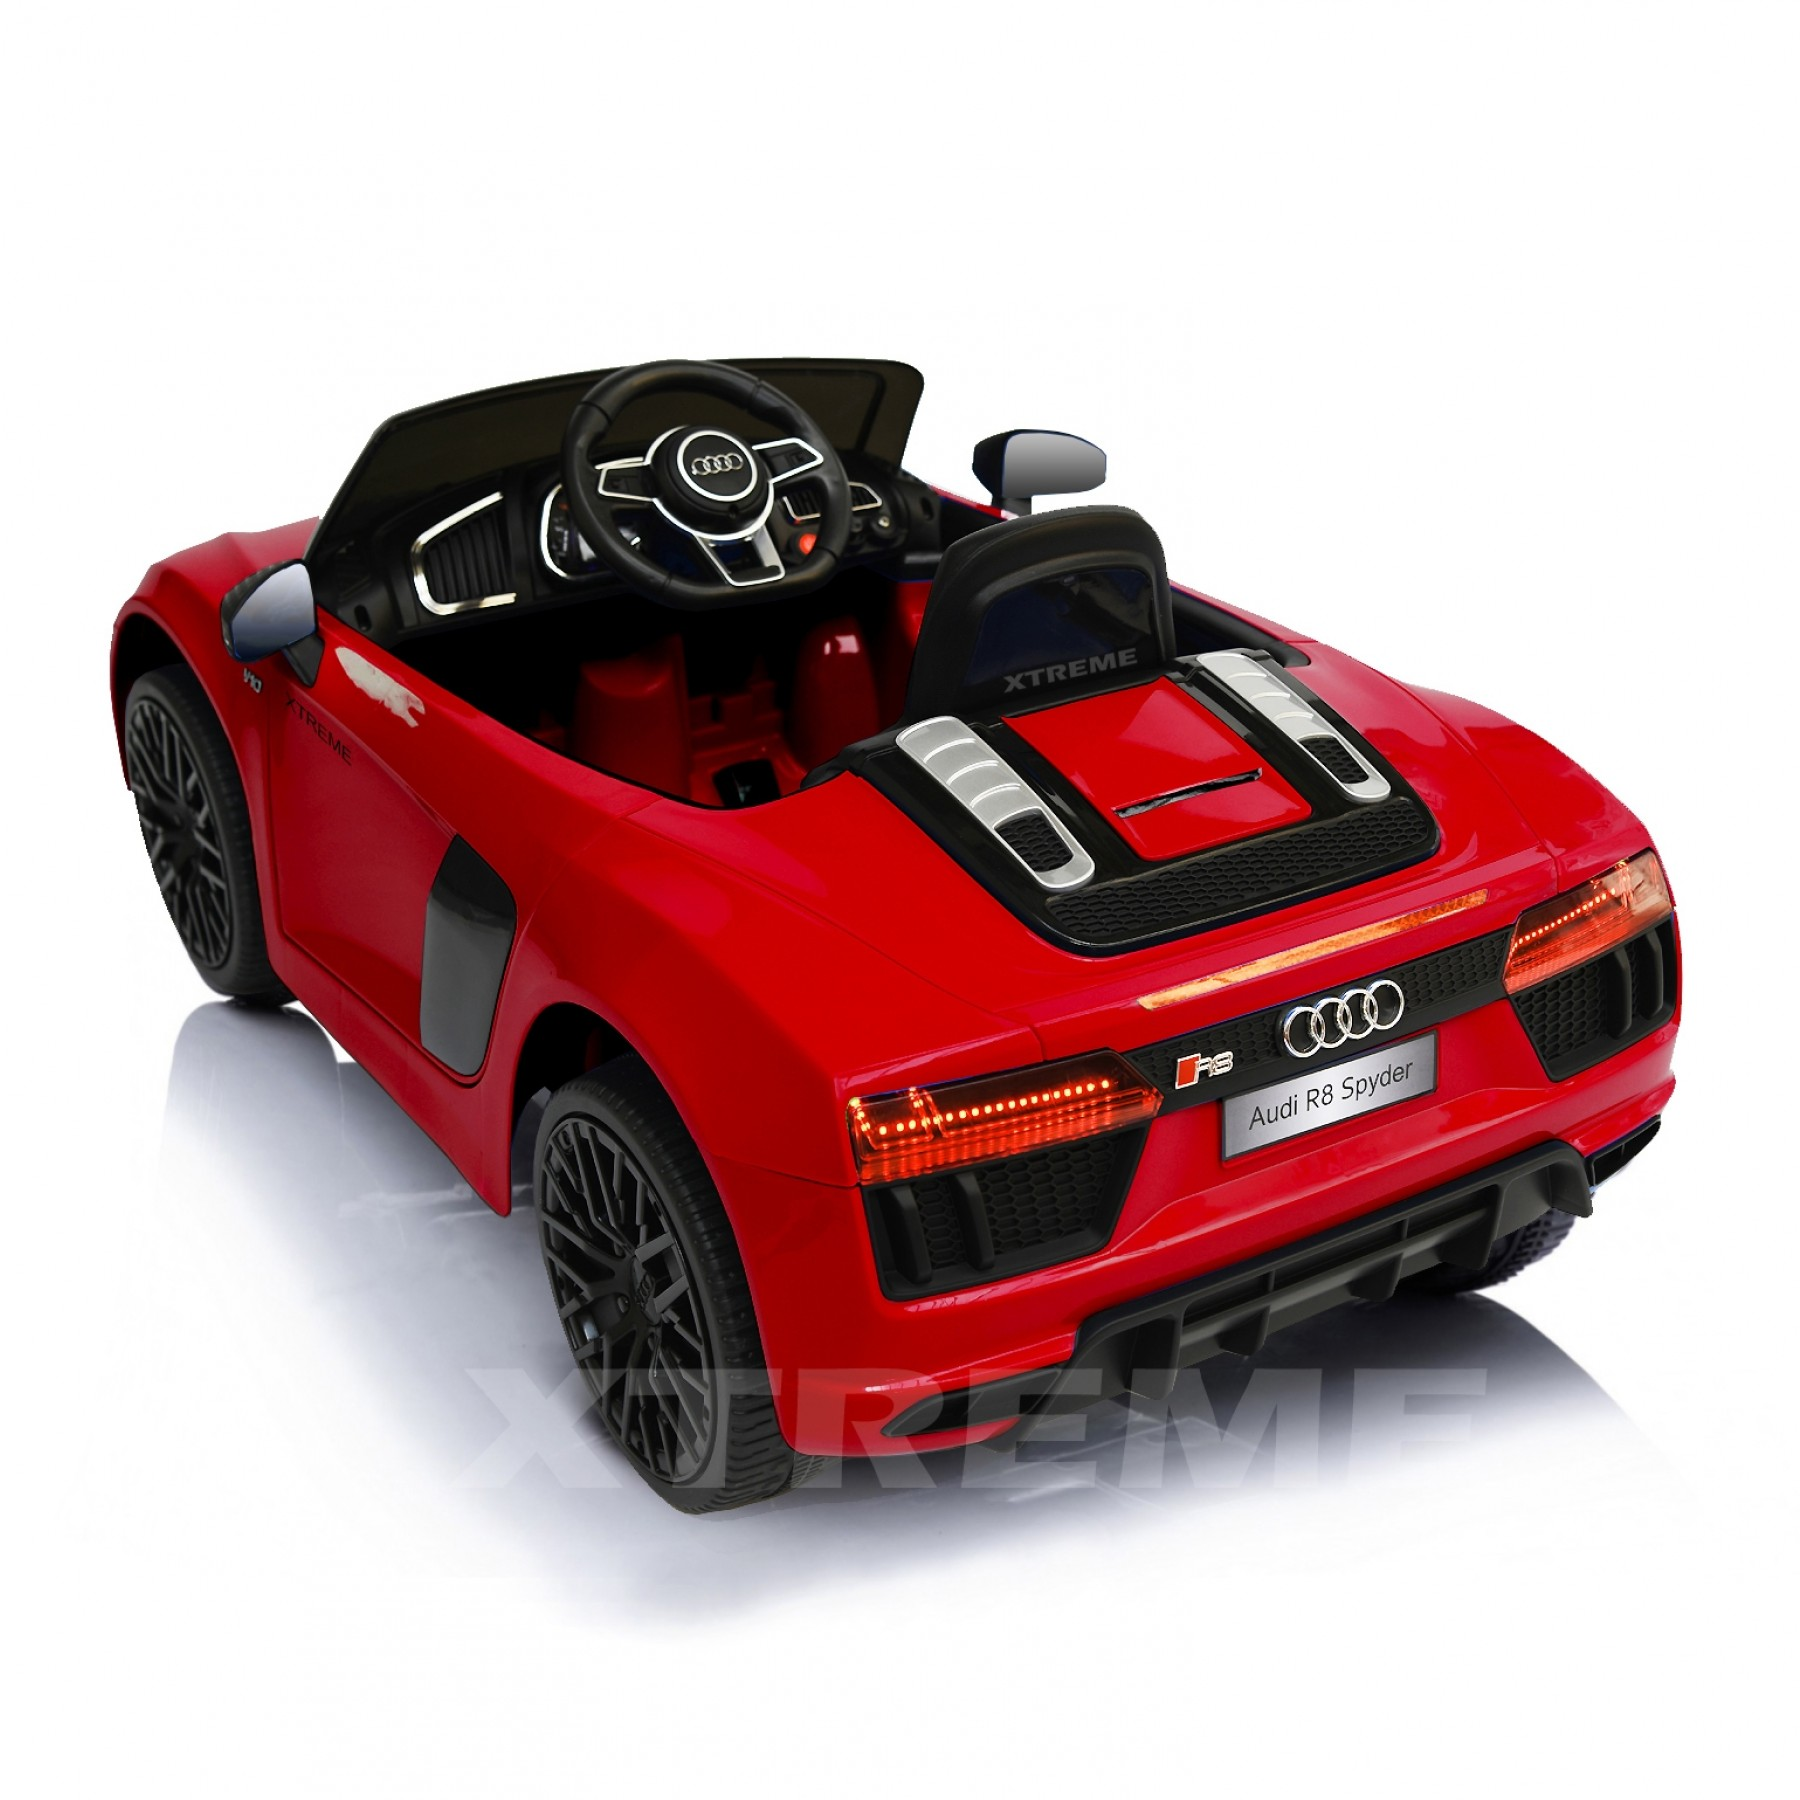 Xtreme 12v Official Licensed Audi R8 Spyder Ride on Car Red Single Headrest